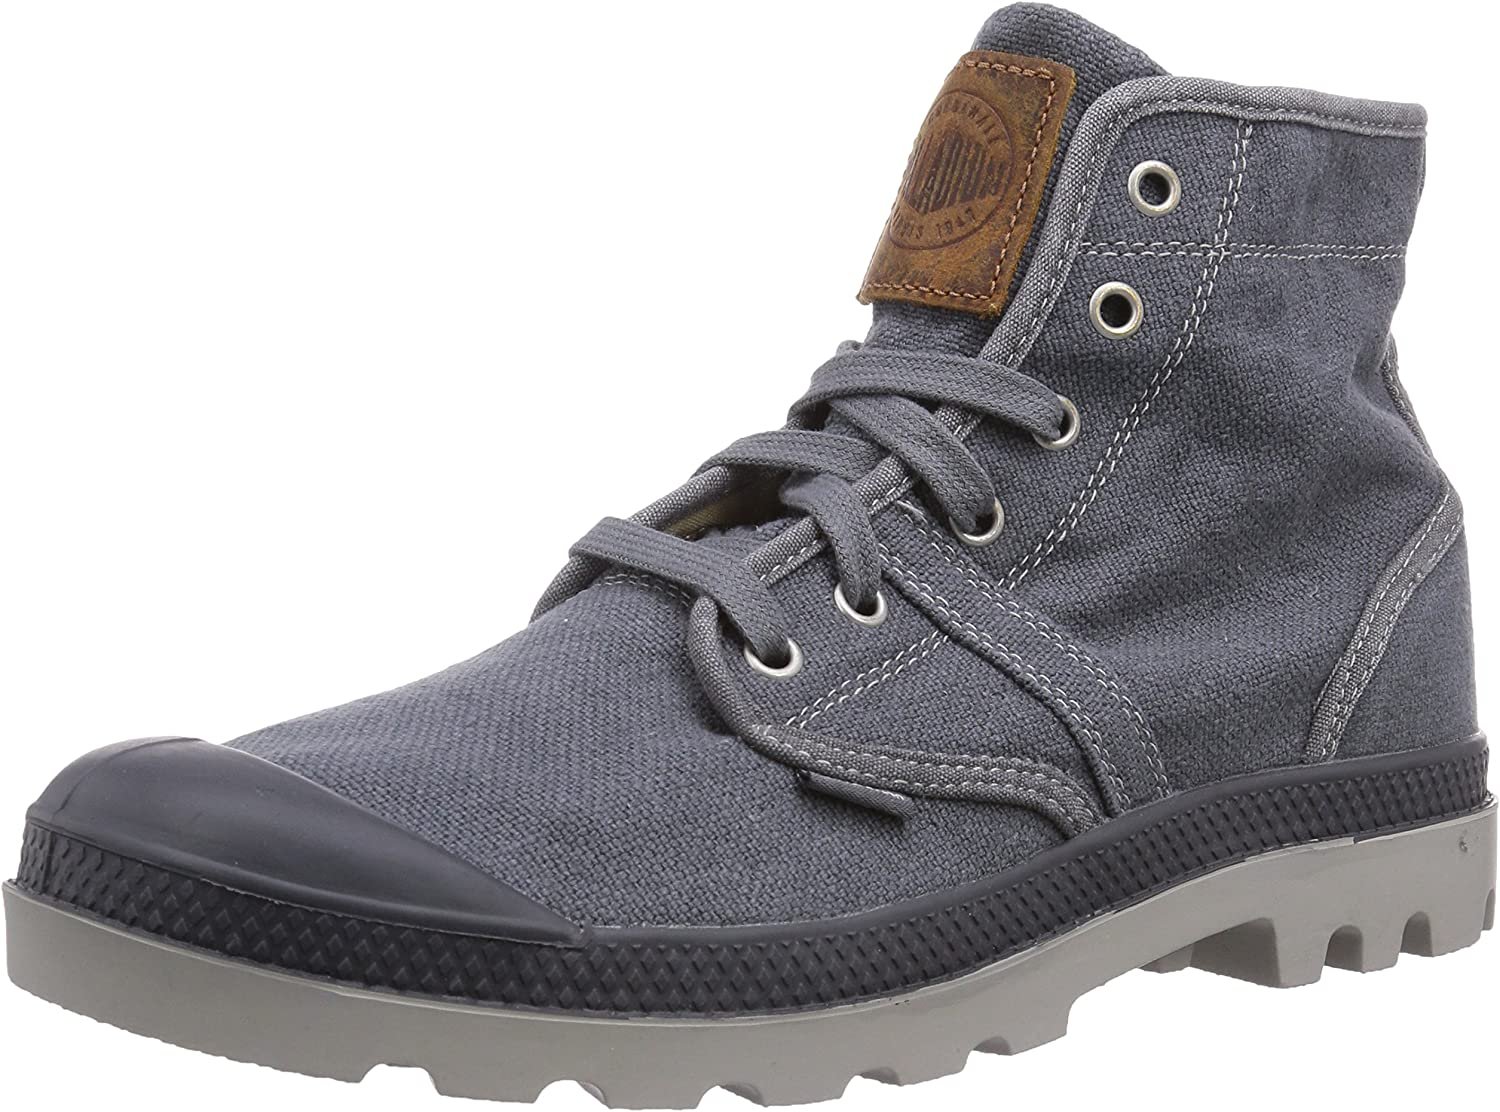 Palladium Pallabrouse Lc, Men's Boots